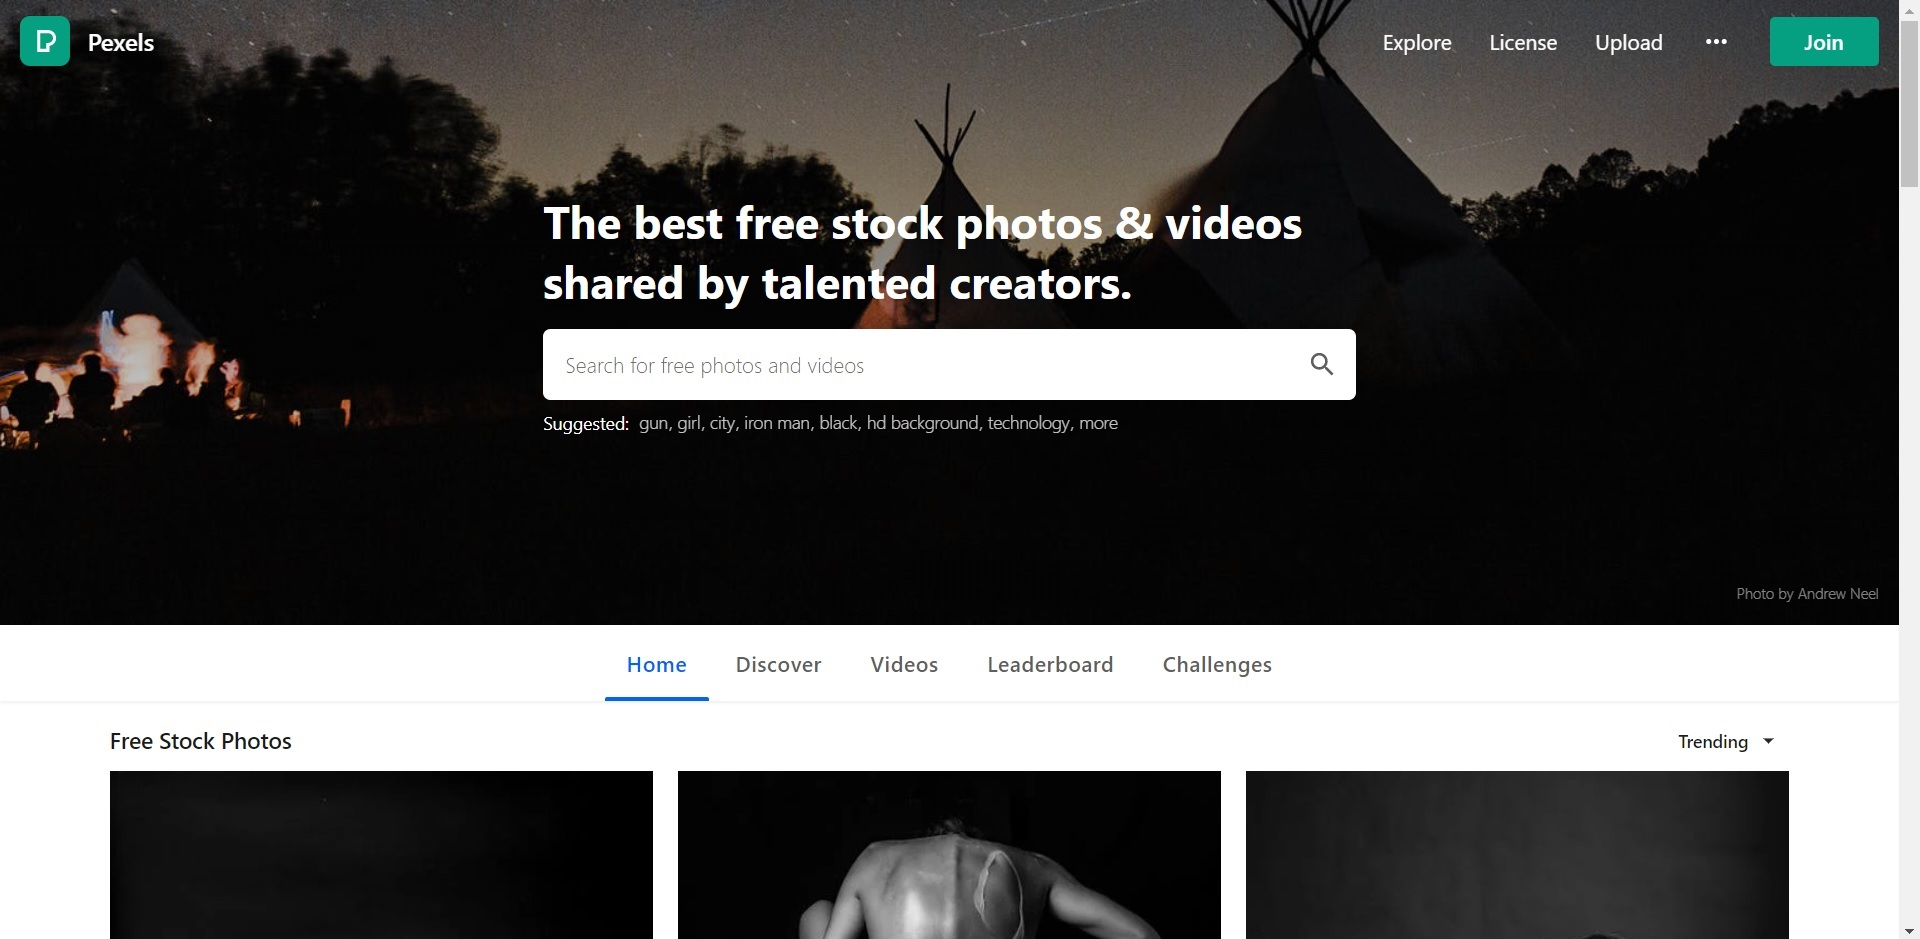 Free stock photos - Pexels - Best websites for royalty free images